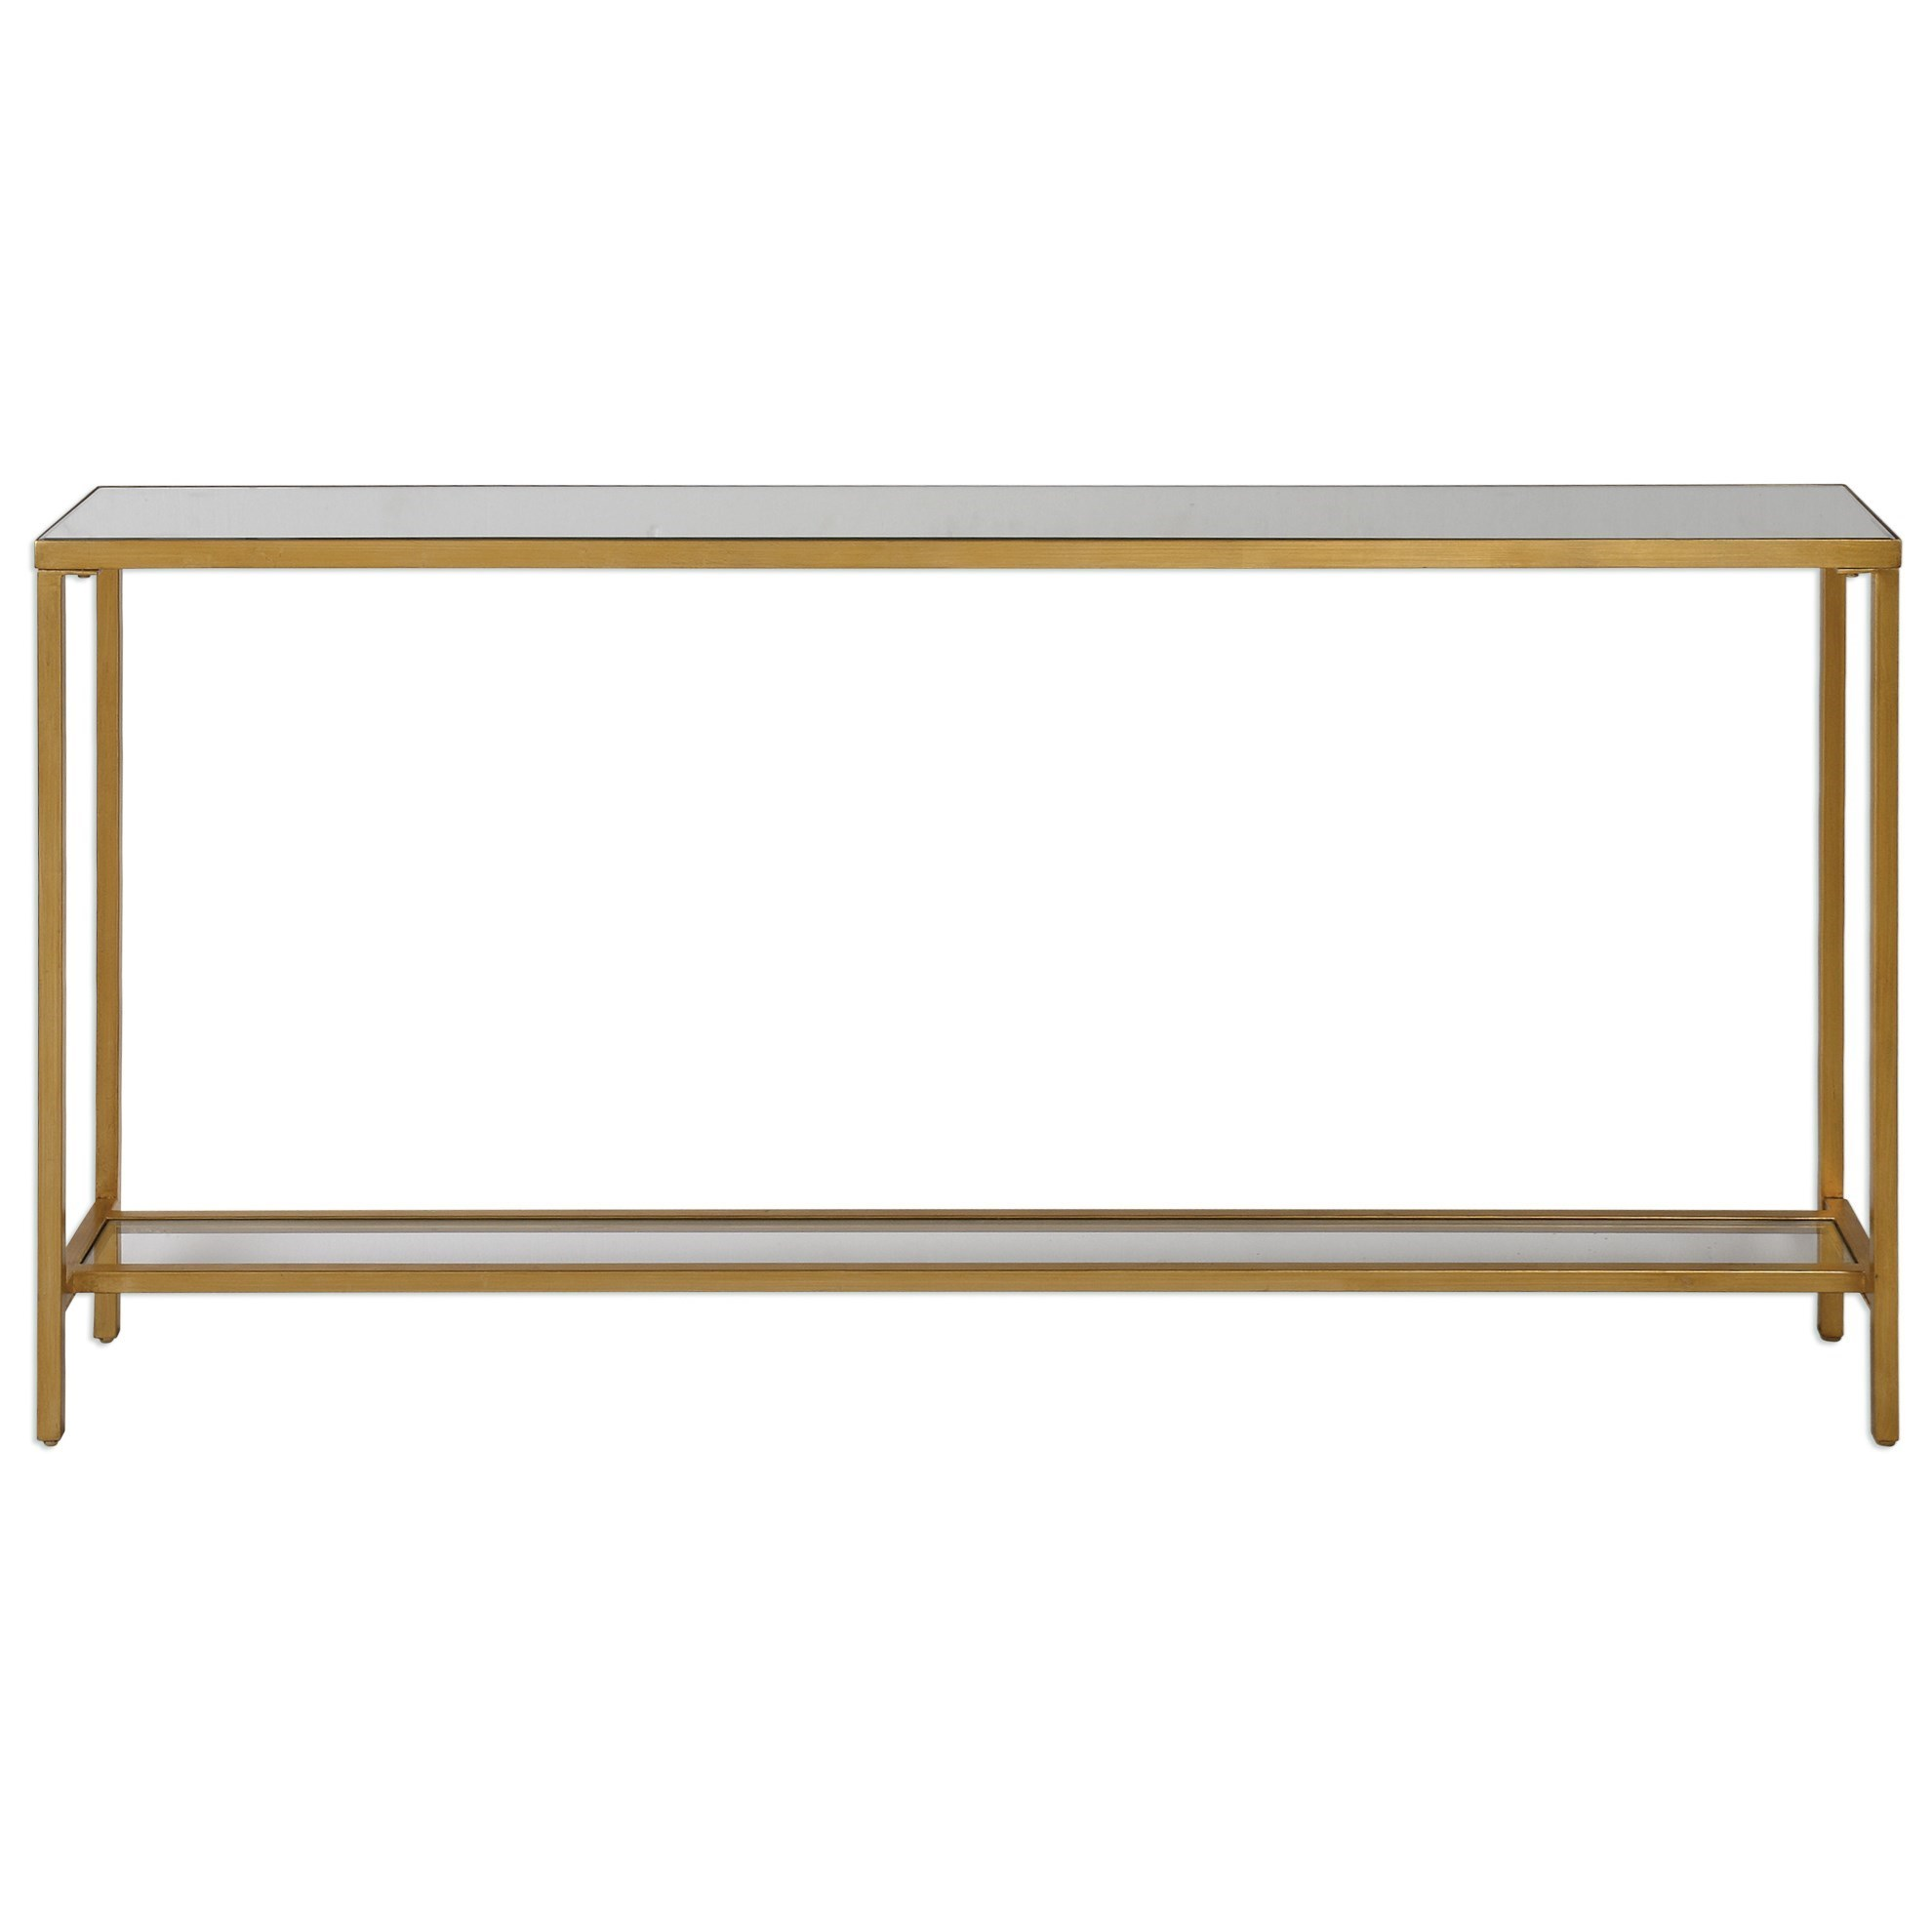 Uttermost Accent Furniture Hayley Console Table   Item Number: 24685